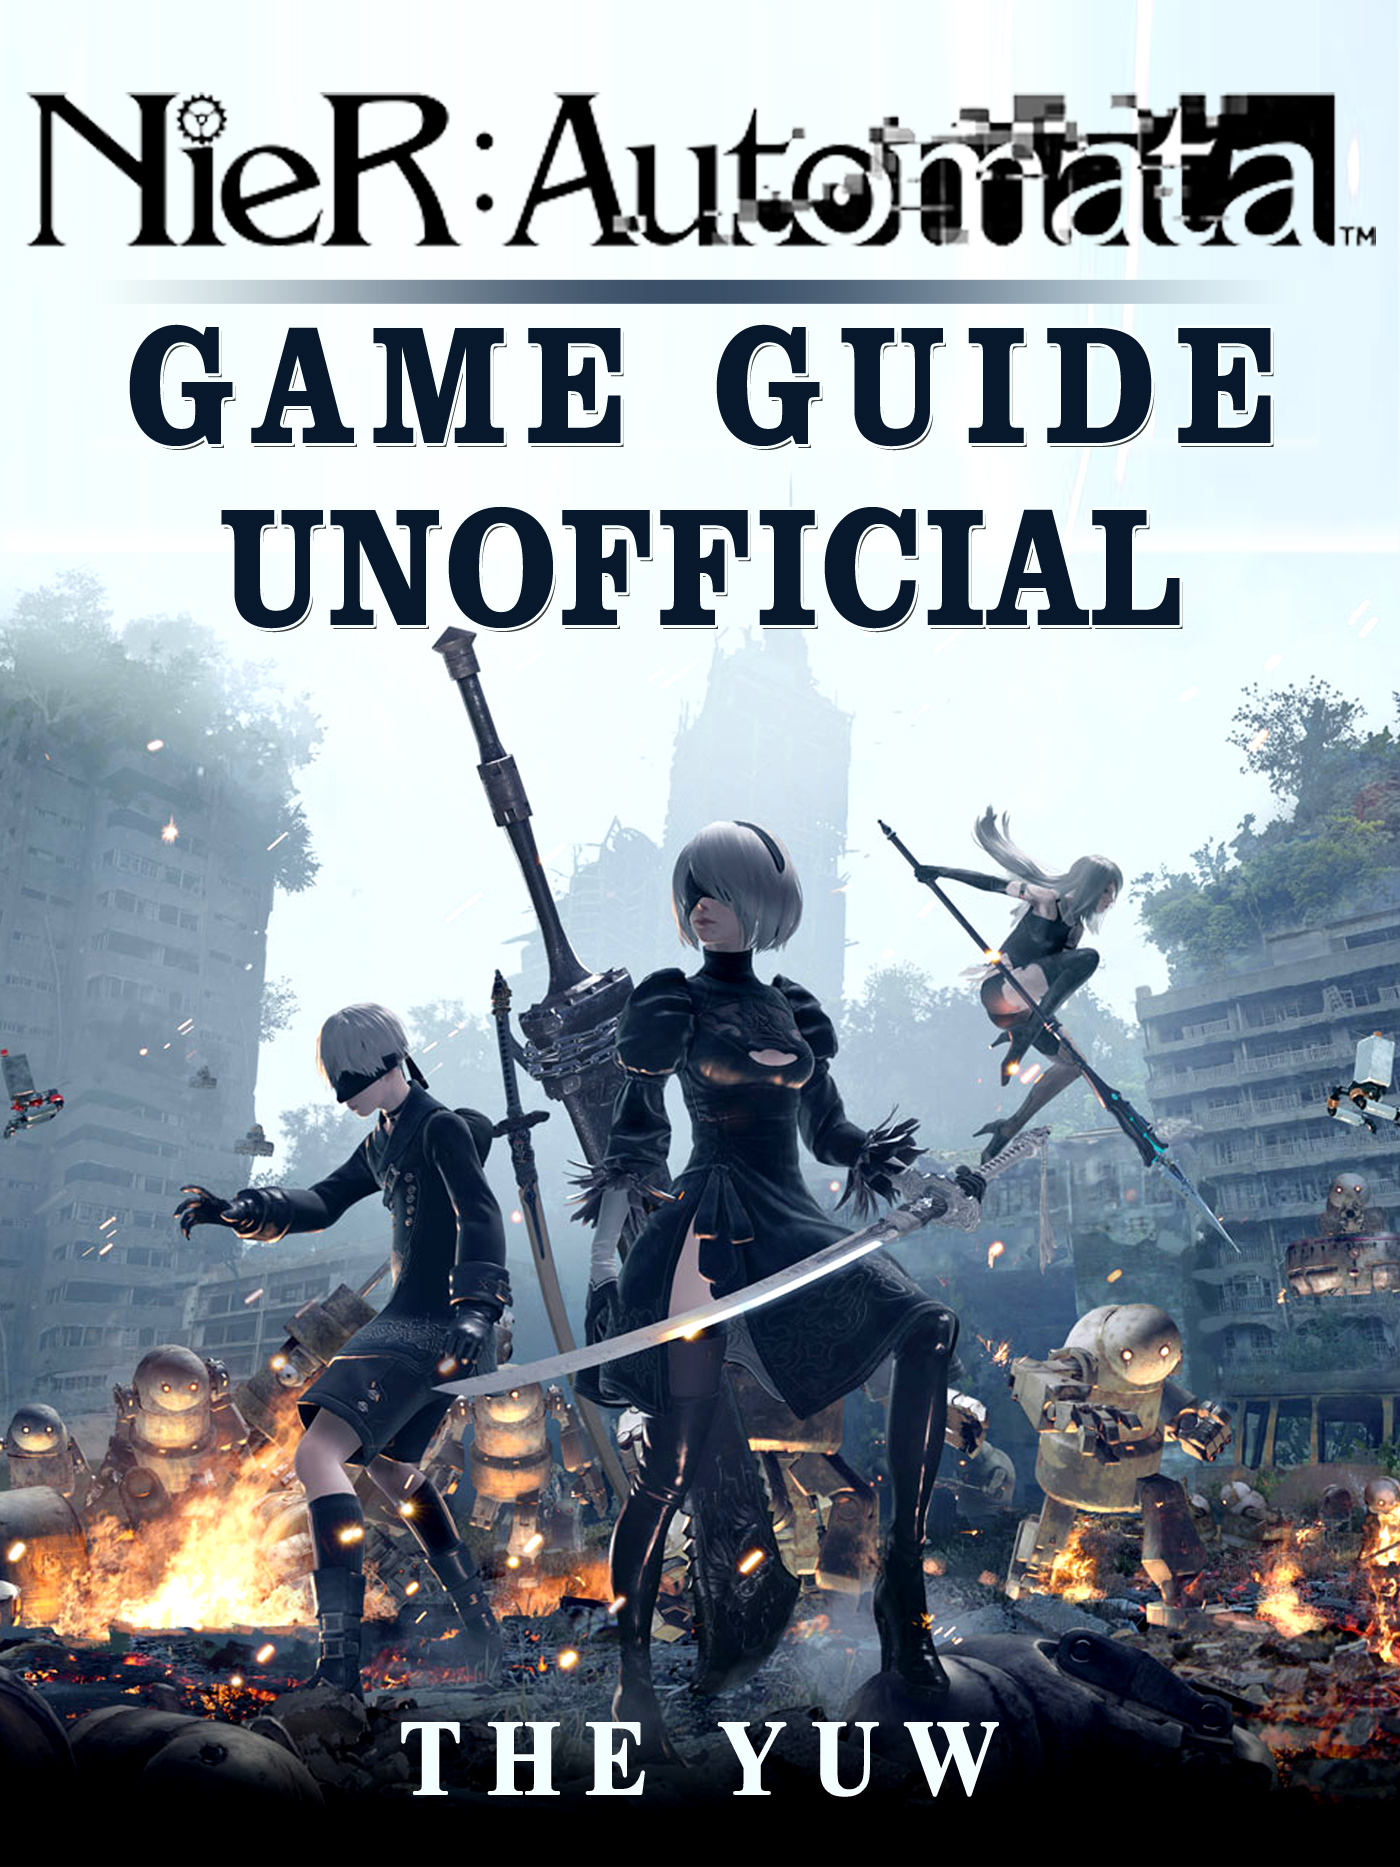 Nier Automata Game Guide Unofficial By The Yuw